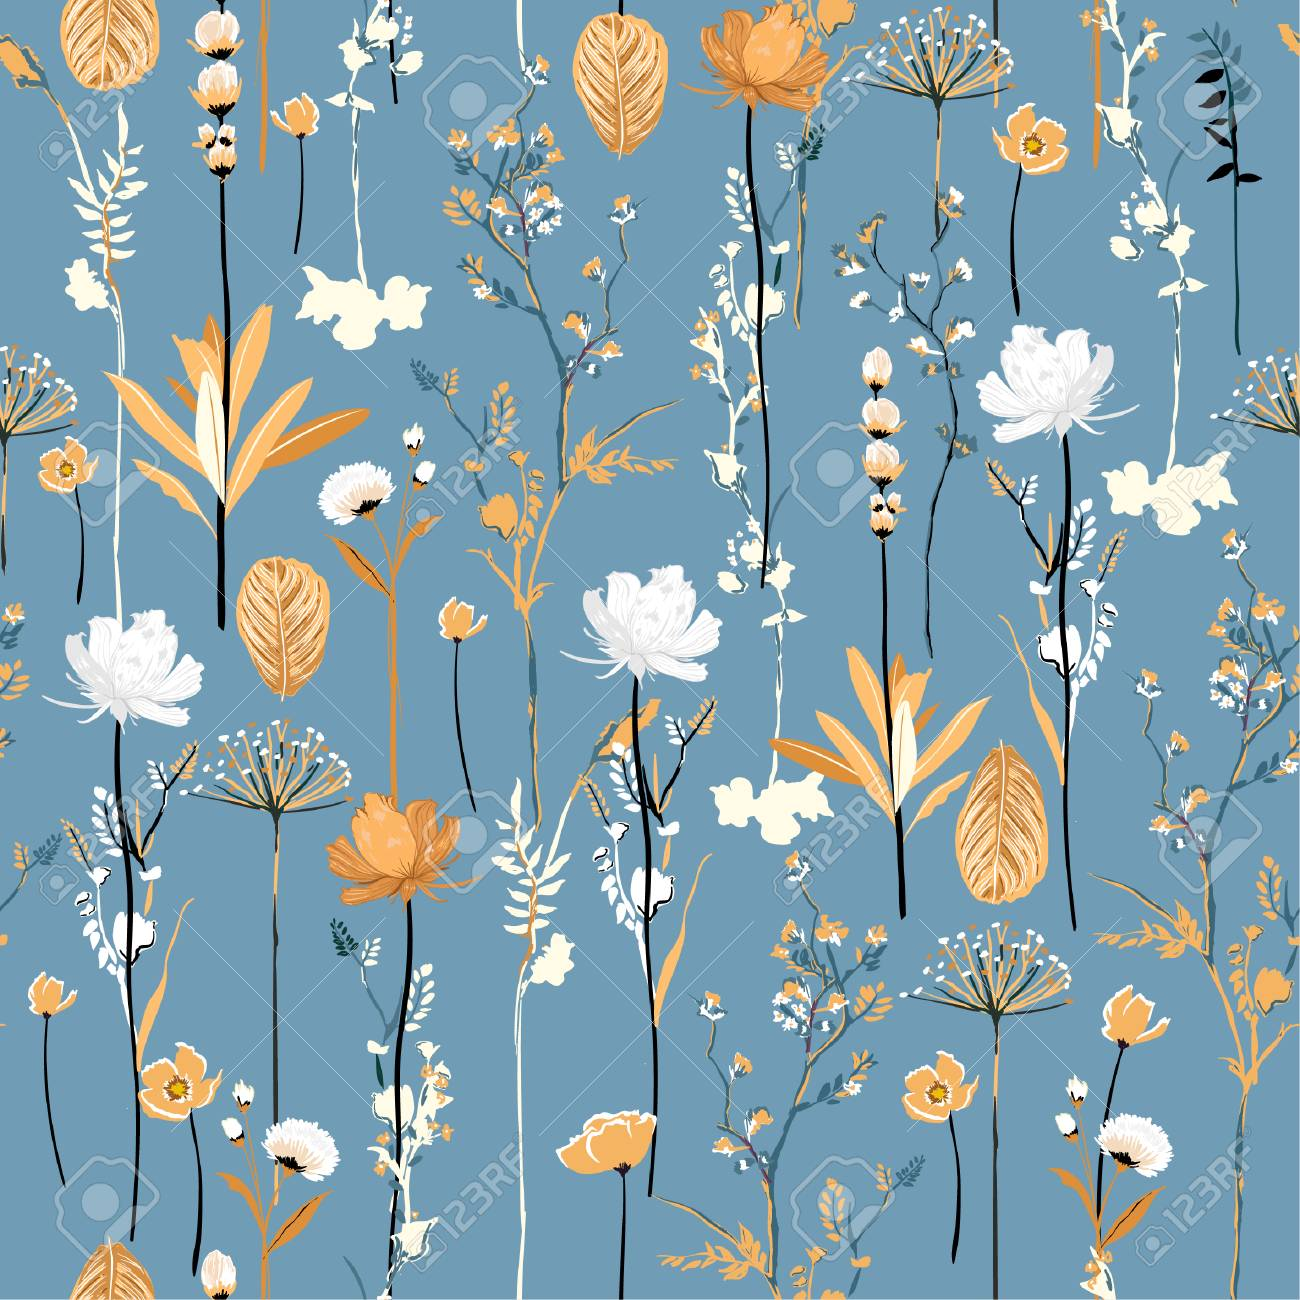 Soft and gentle botanical blooming garden flowers seamless pattern vertical repeat in vector design for fabric,fashion,textile,web,wallpaper,all prints on light blue - 122979844